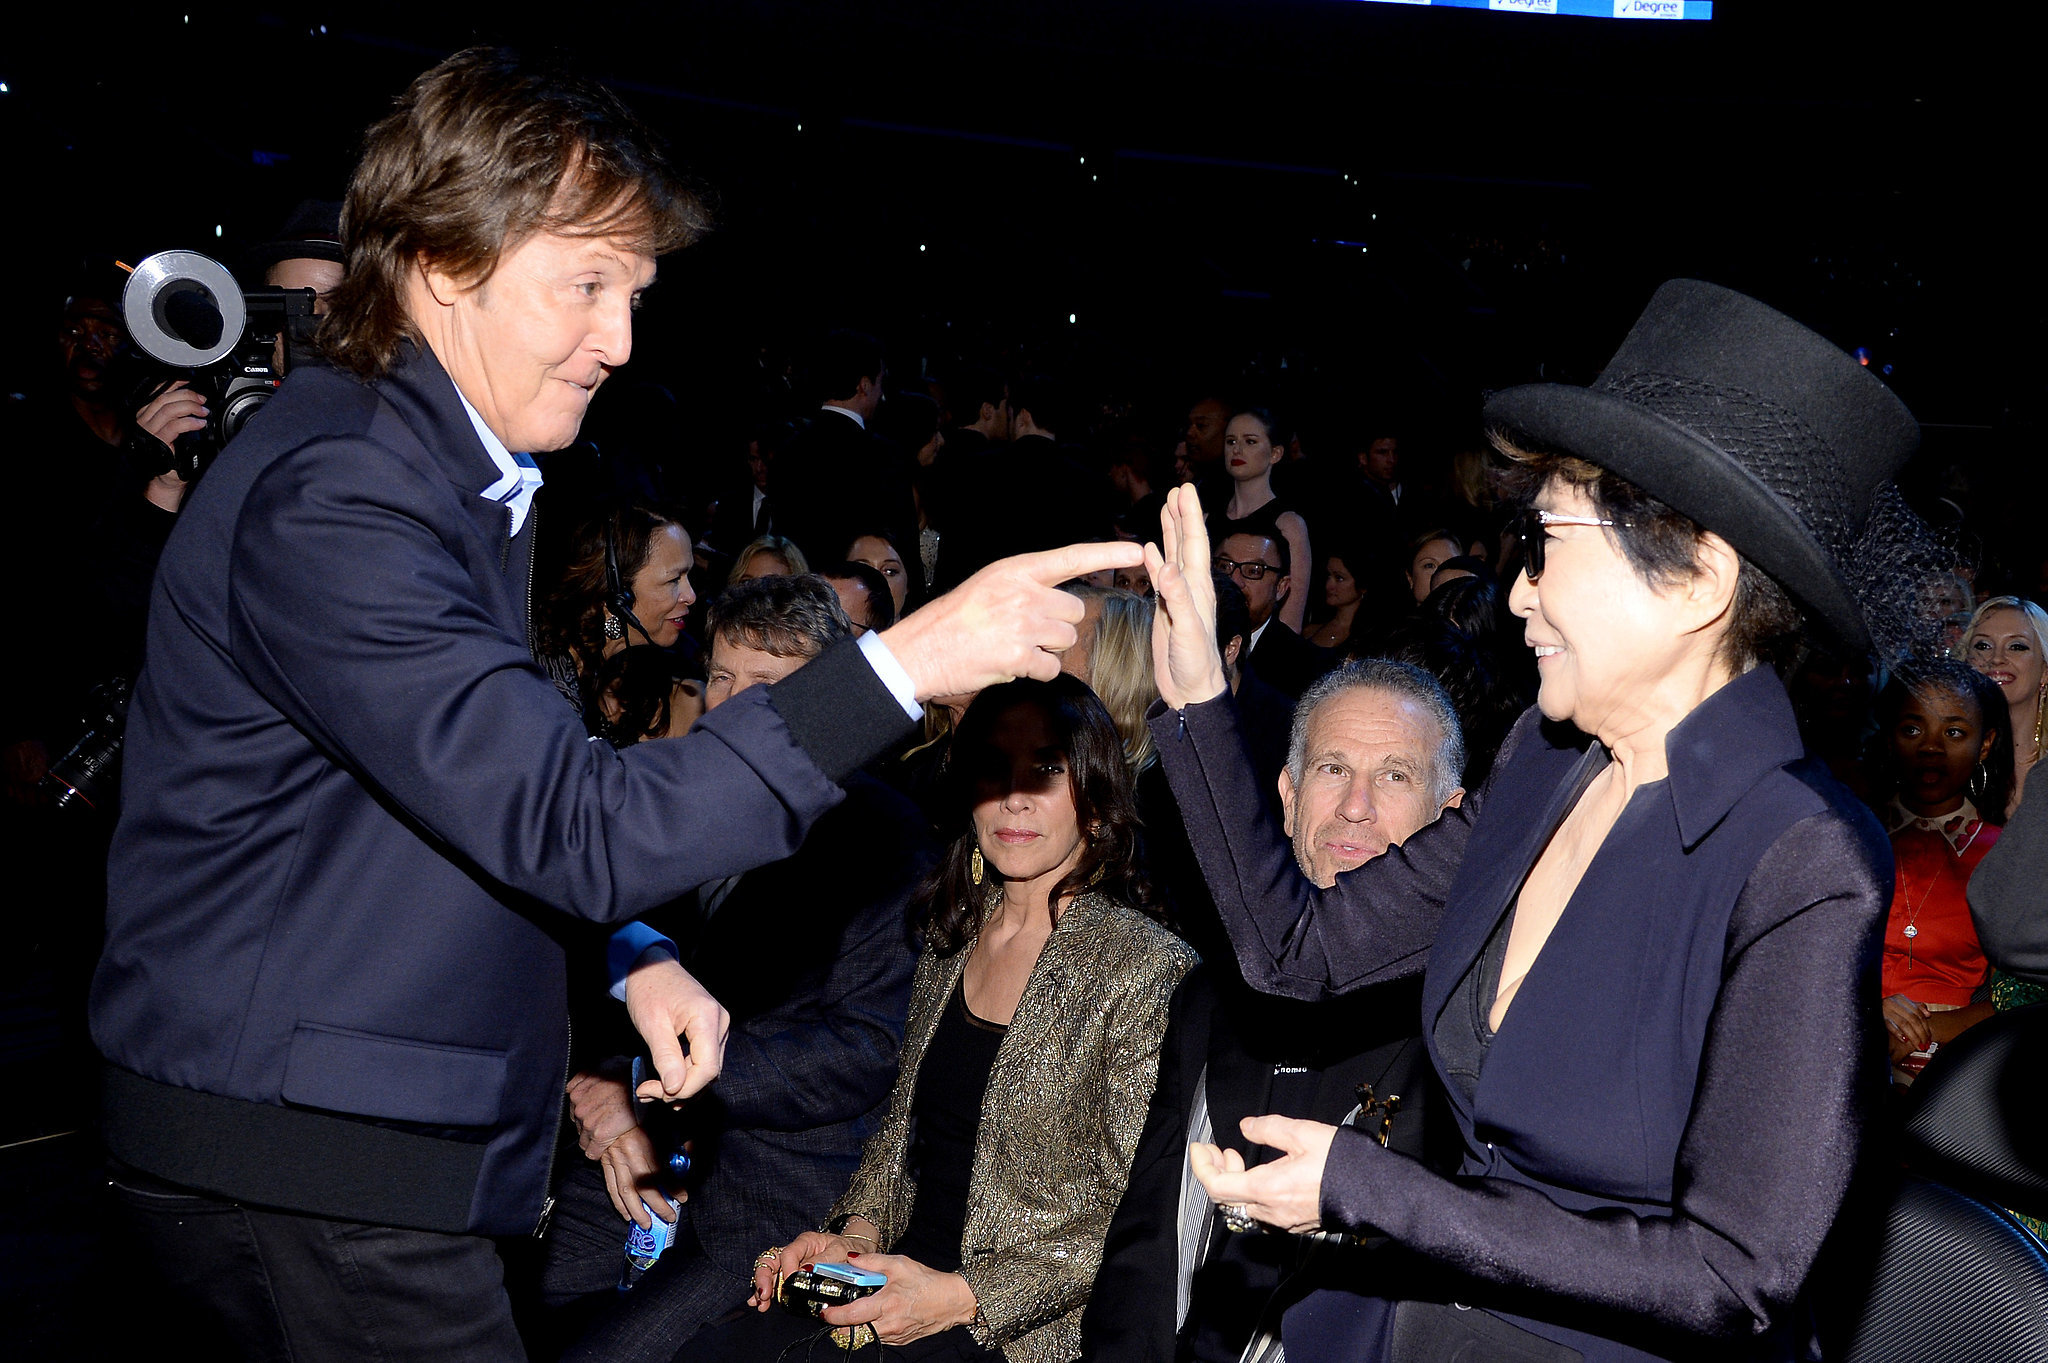 Paul McCartney and Yoko Ono shared a moment.